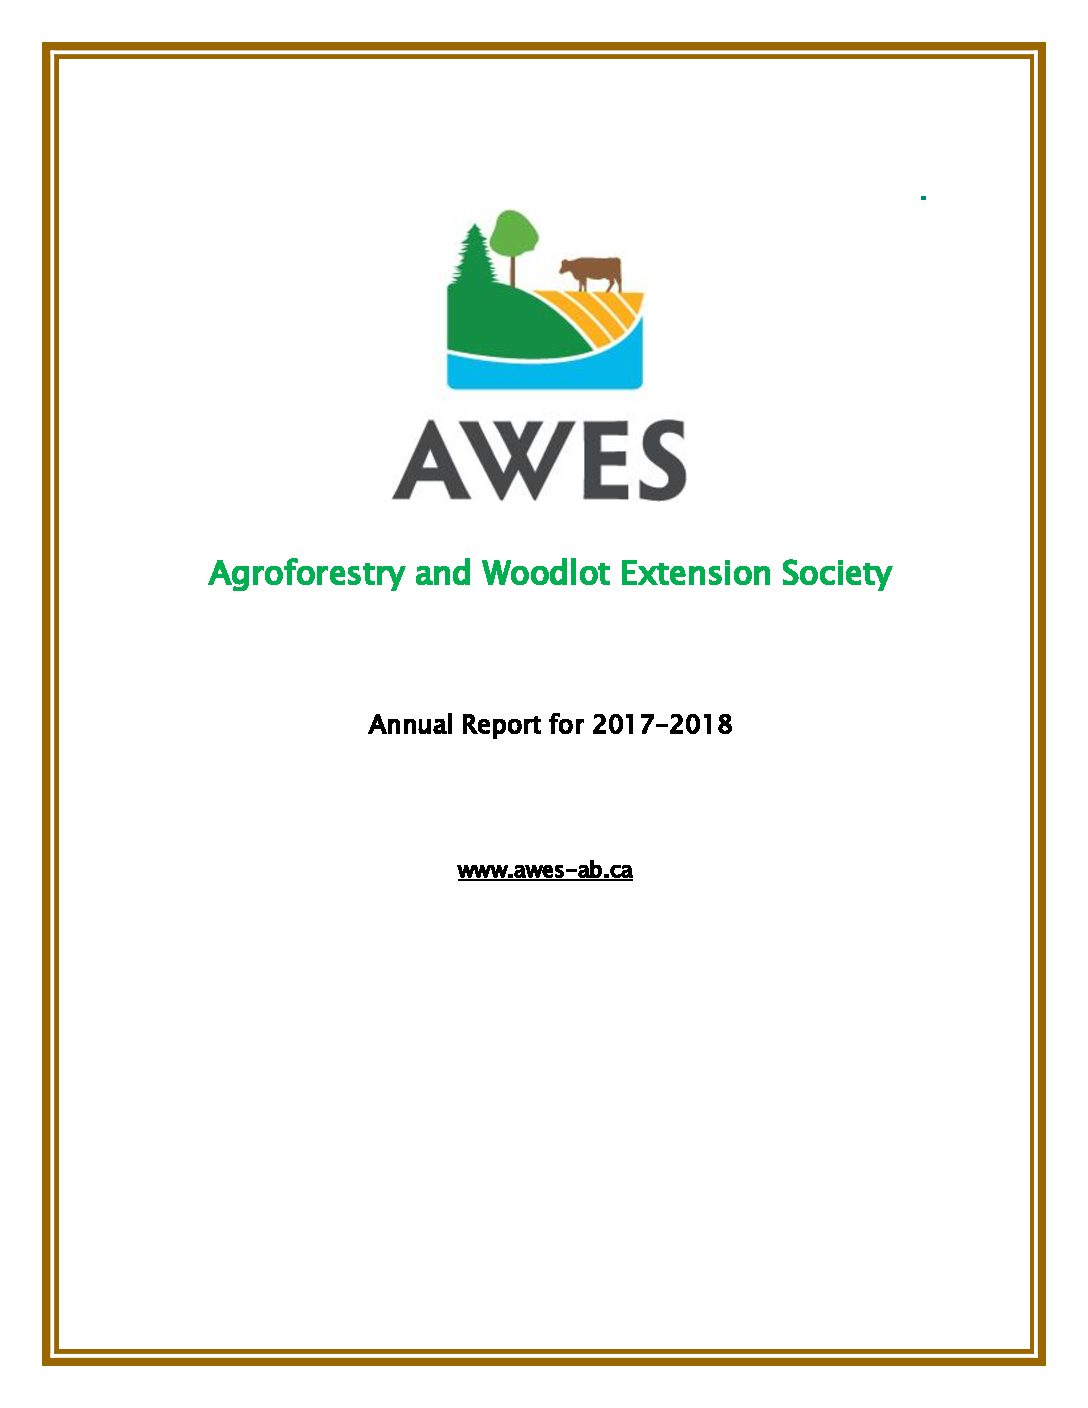 AWES Annual Report 2017-2018